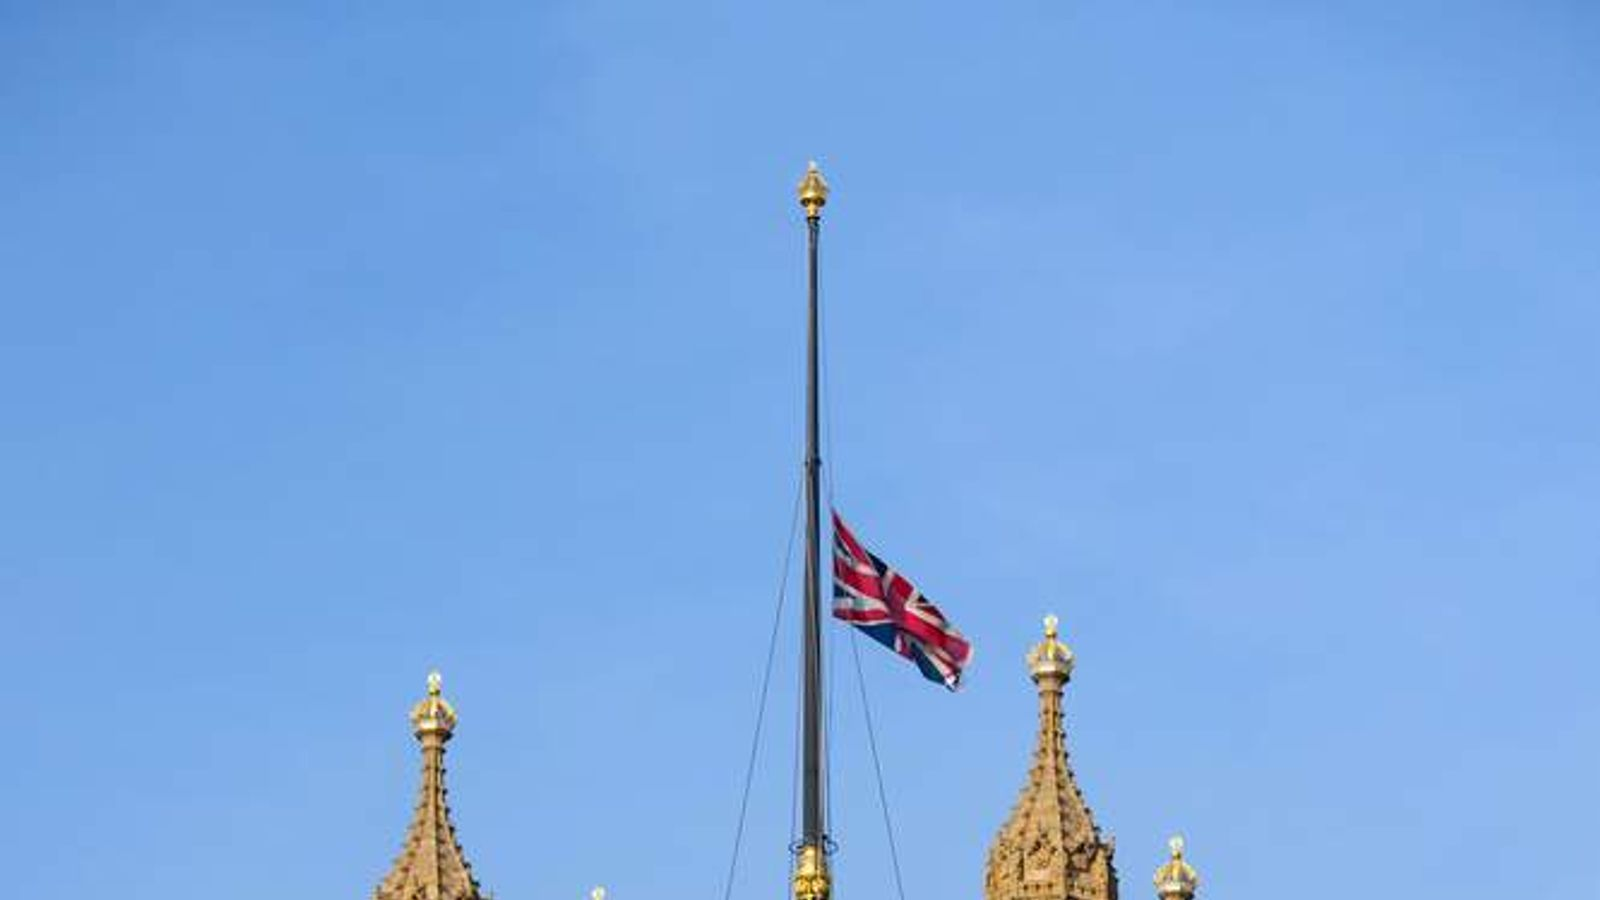 The flag at the Houses of Parliament, London, flies at half mast as a mark of respect for King Abdullah of Saudi Arabia, whose death was announced last night